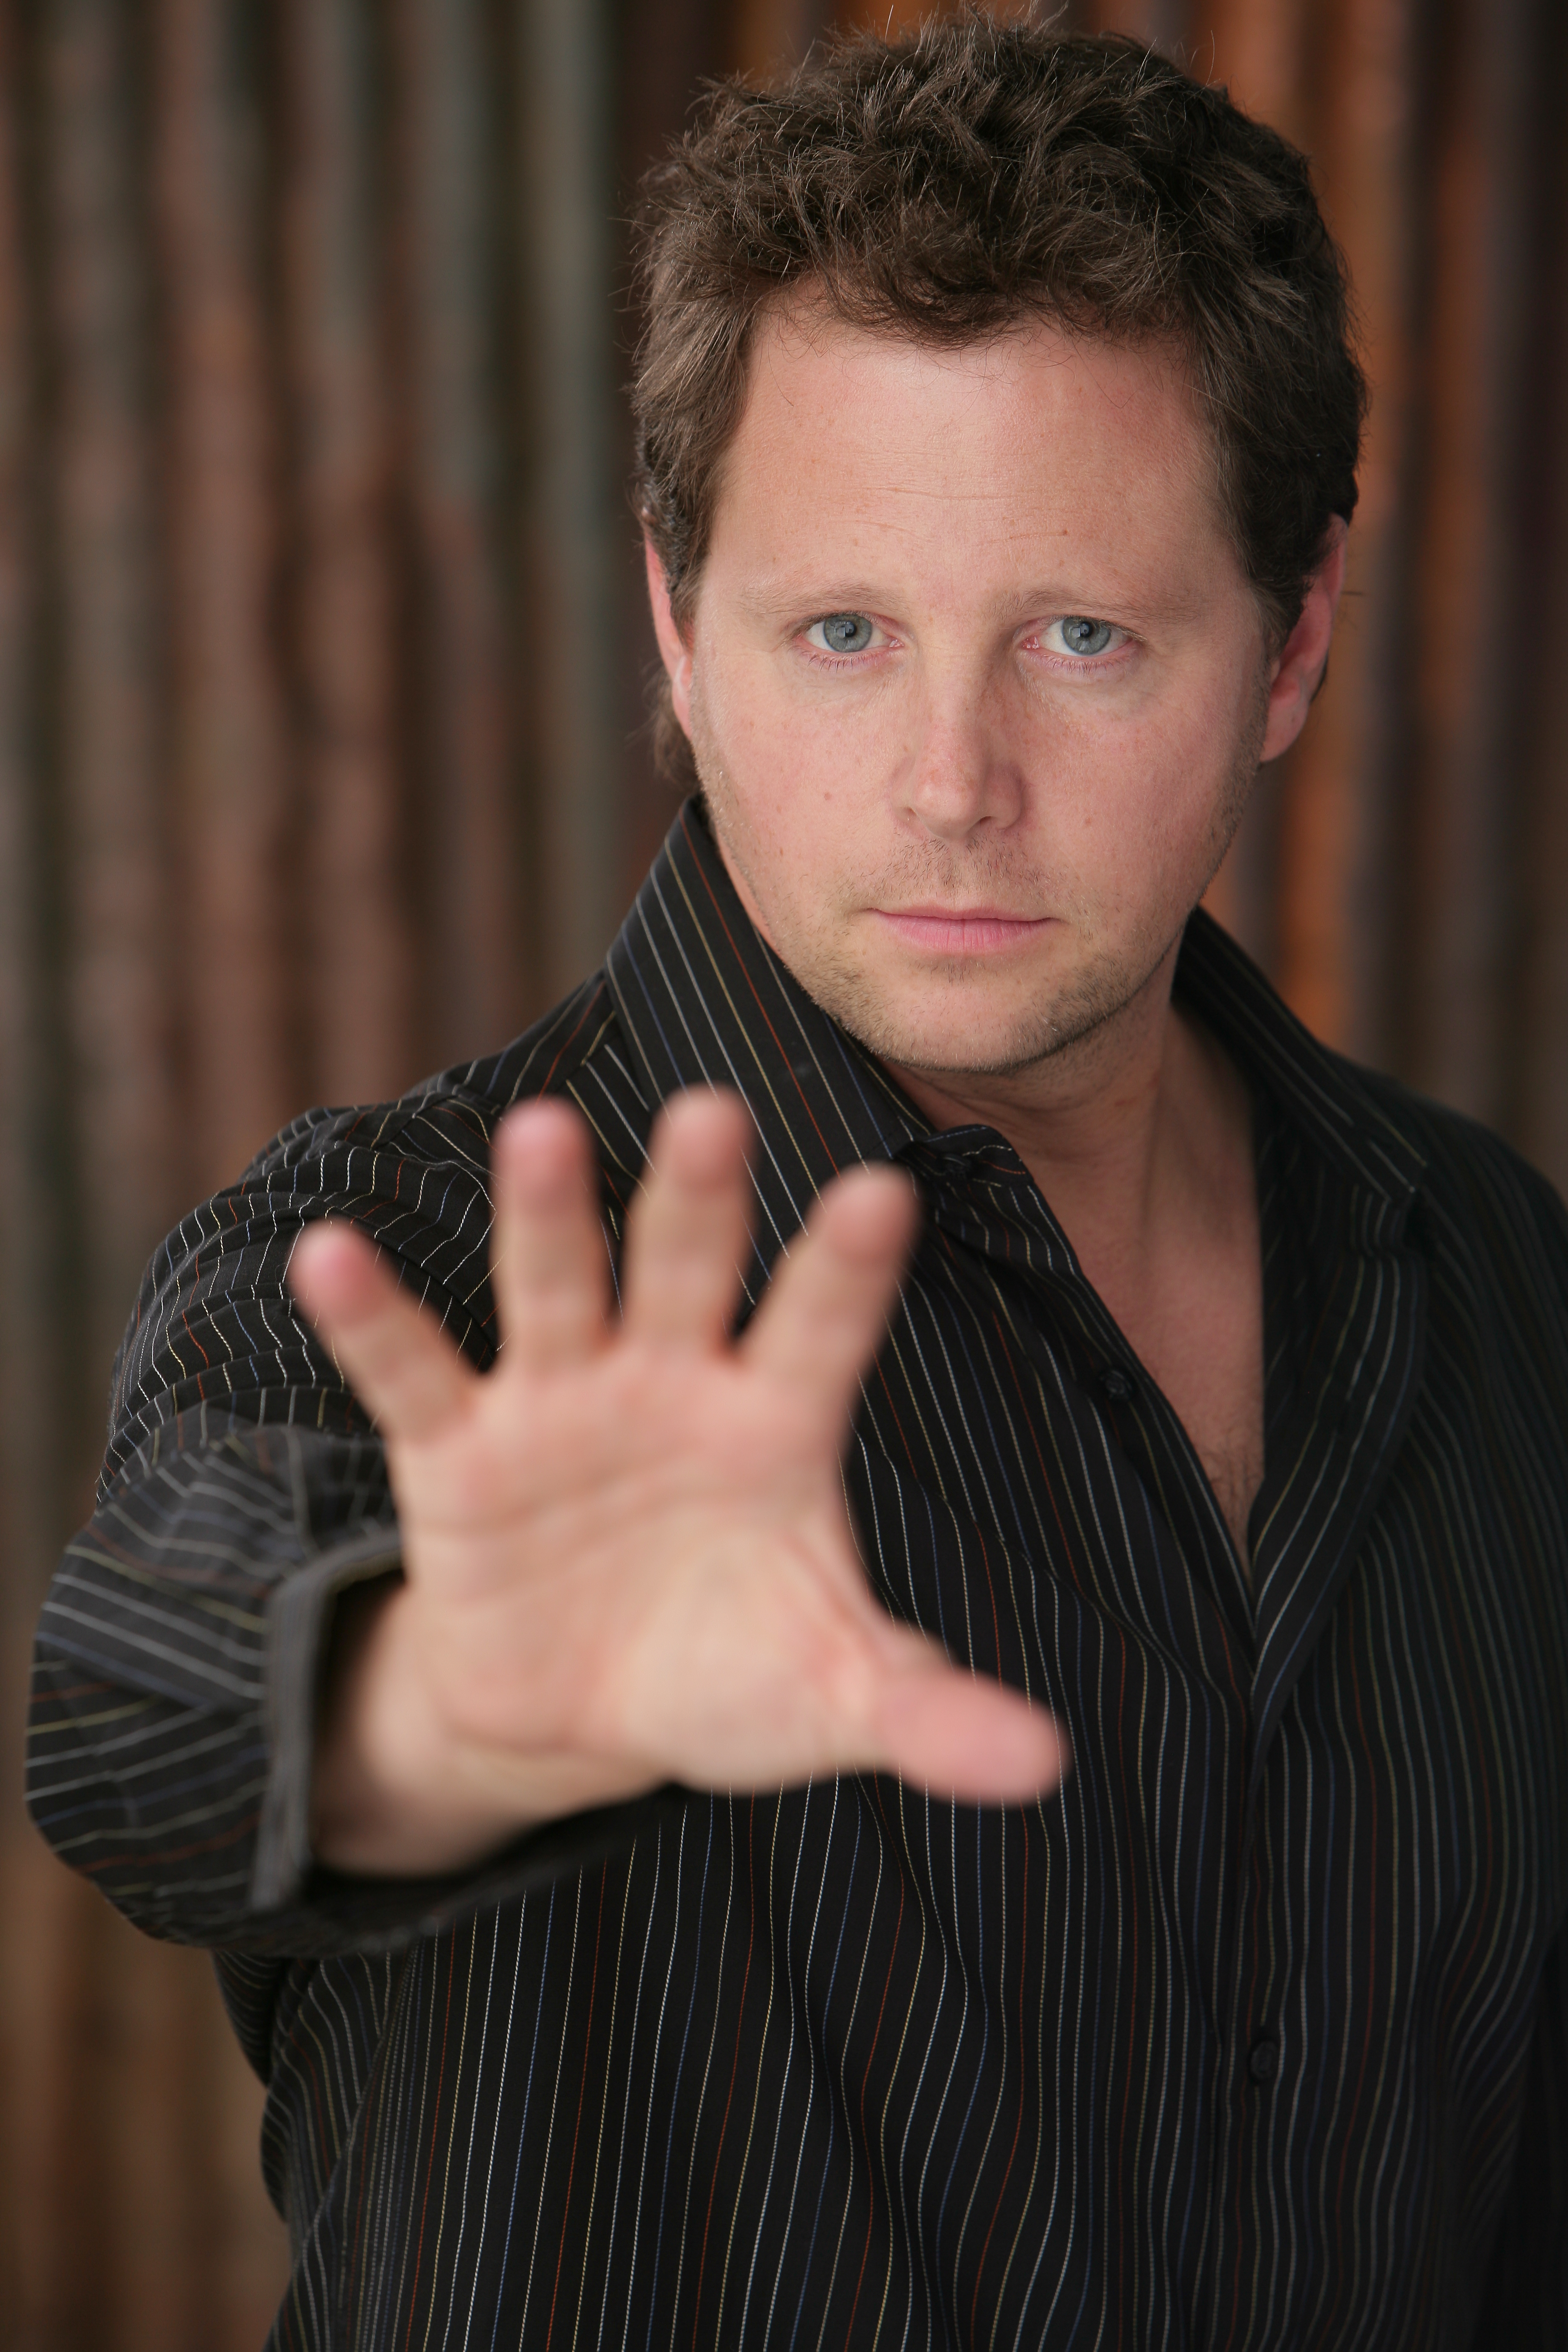 Image of Illusionist Andy Gross.